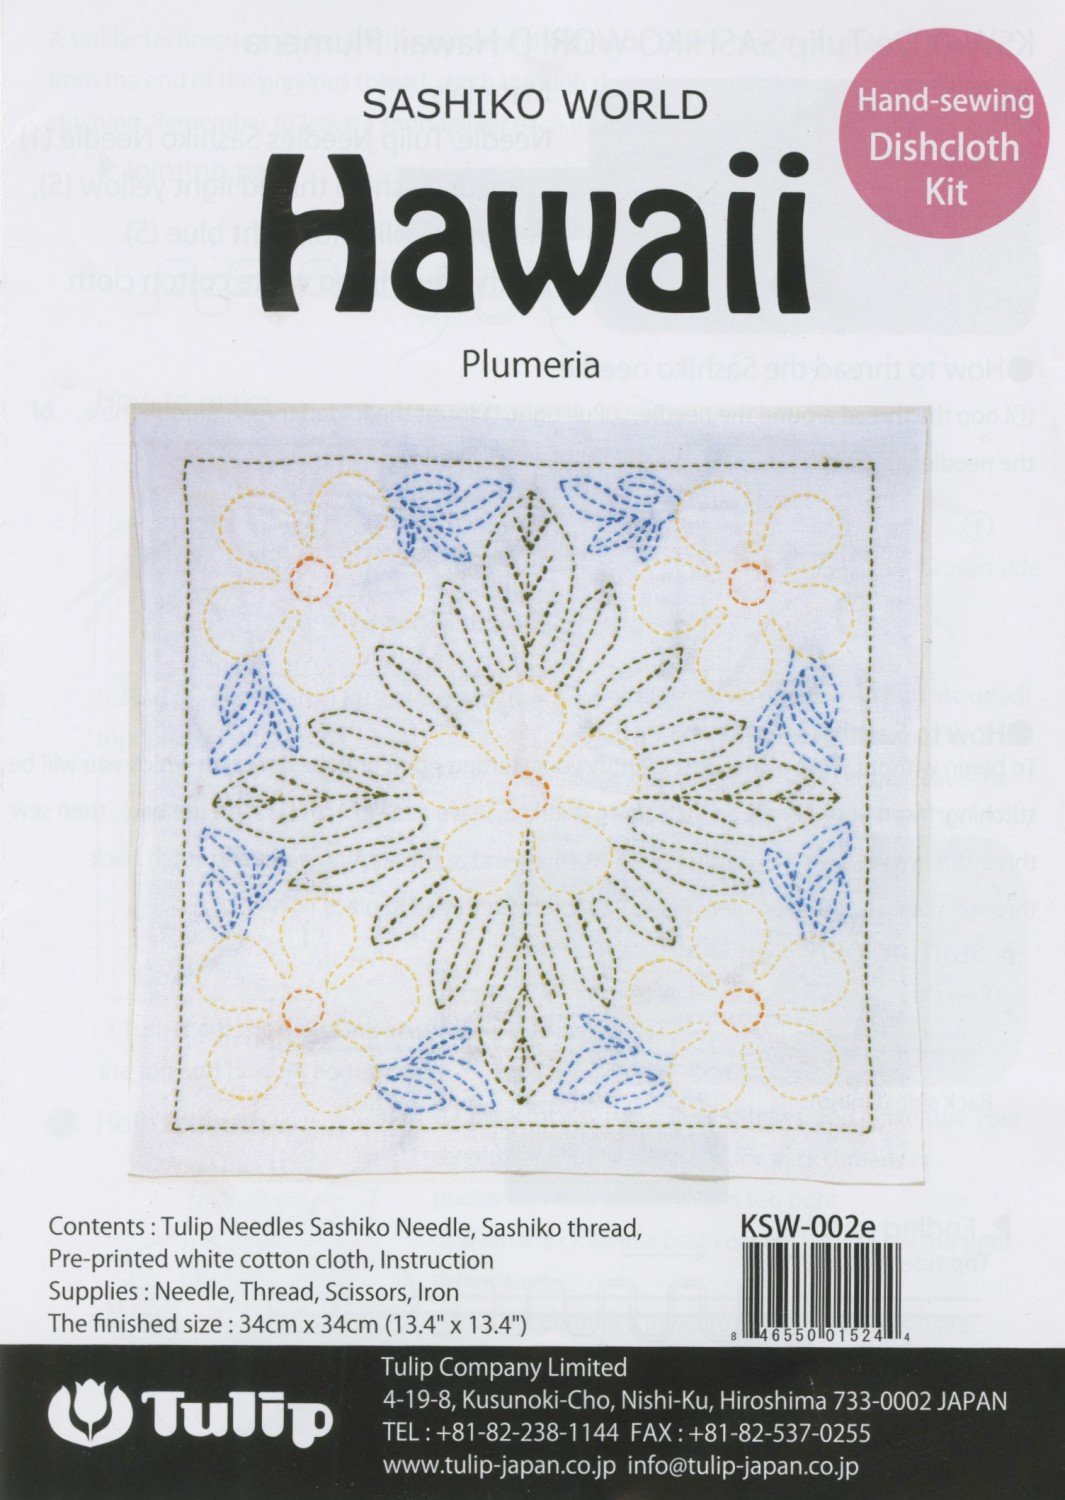 Sashiko World Kit: Hawaii - Plumeria